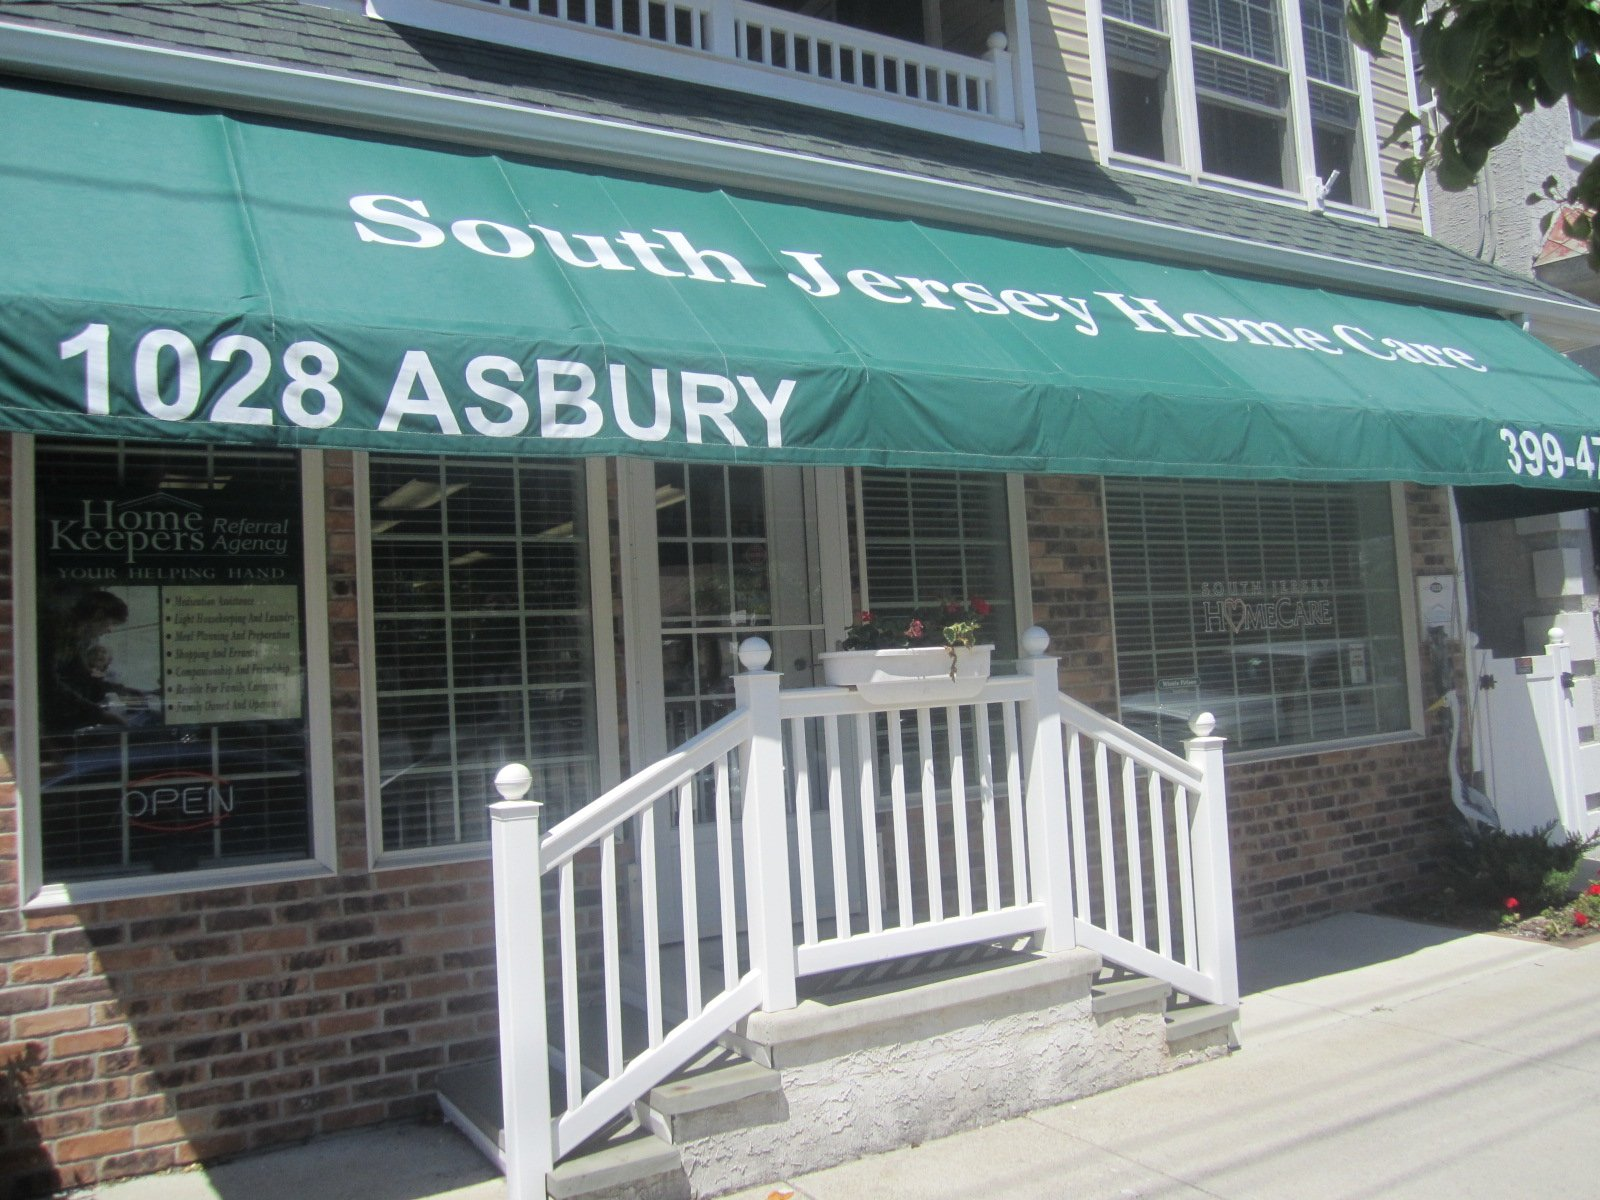 South Jersey Home Care